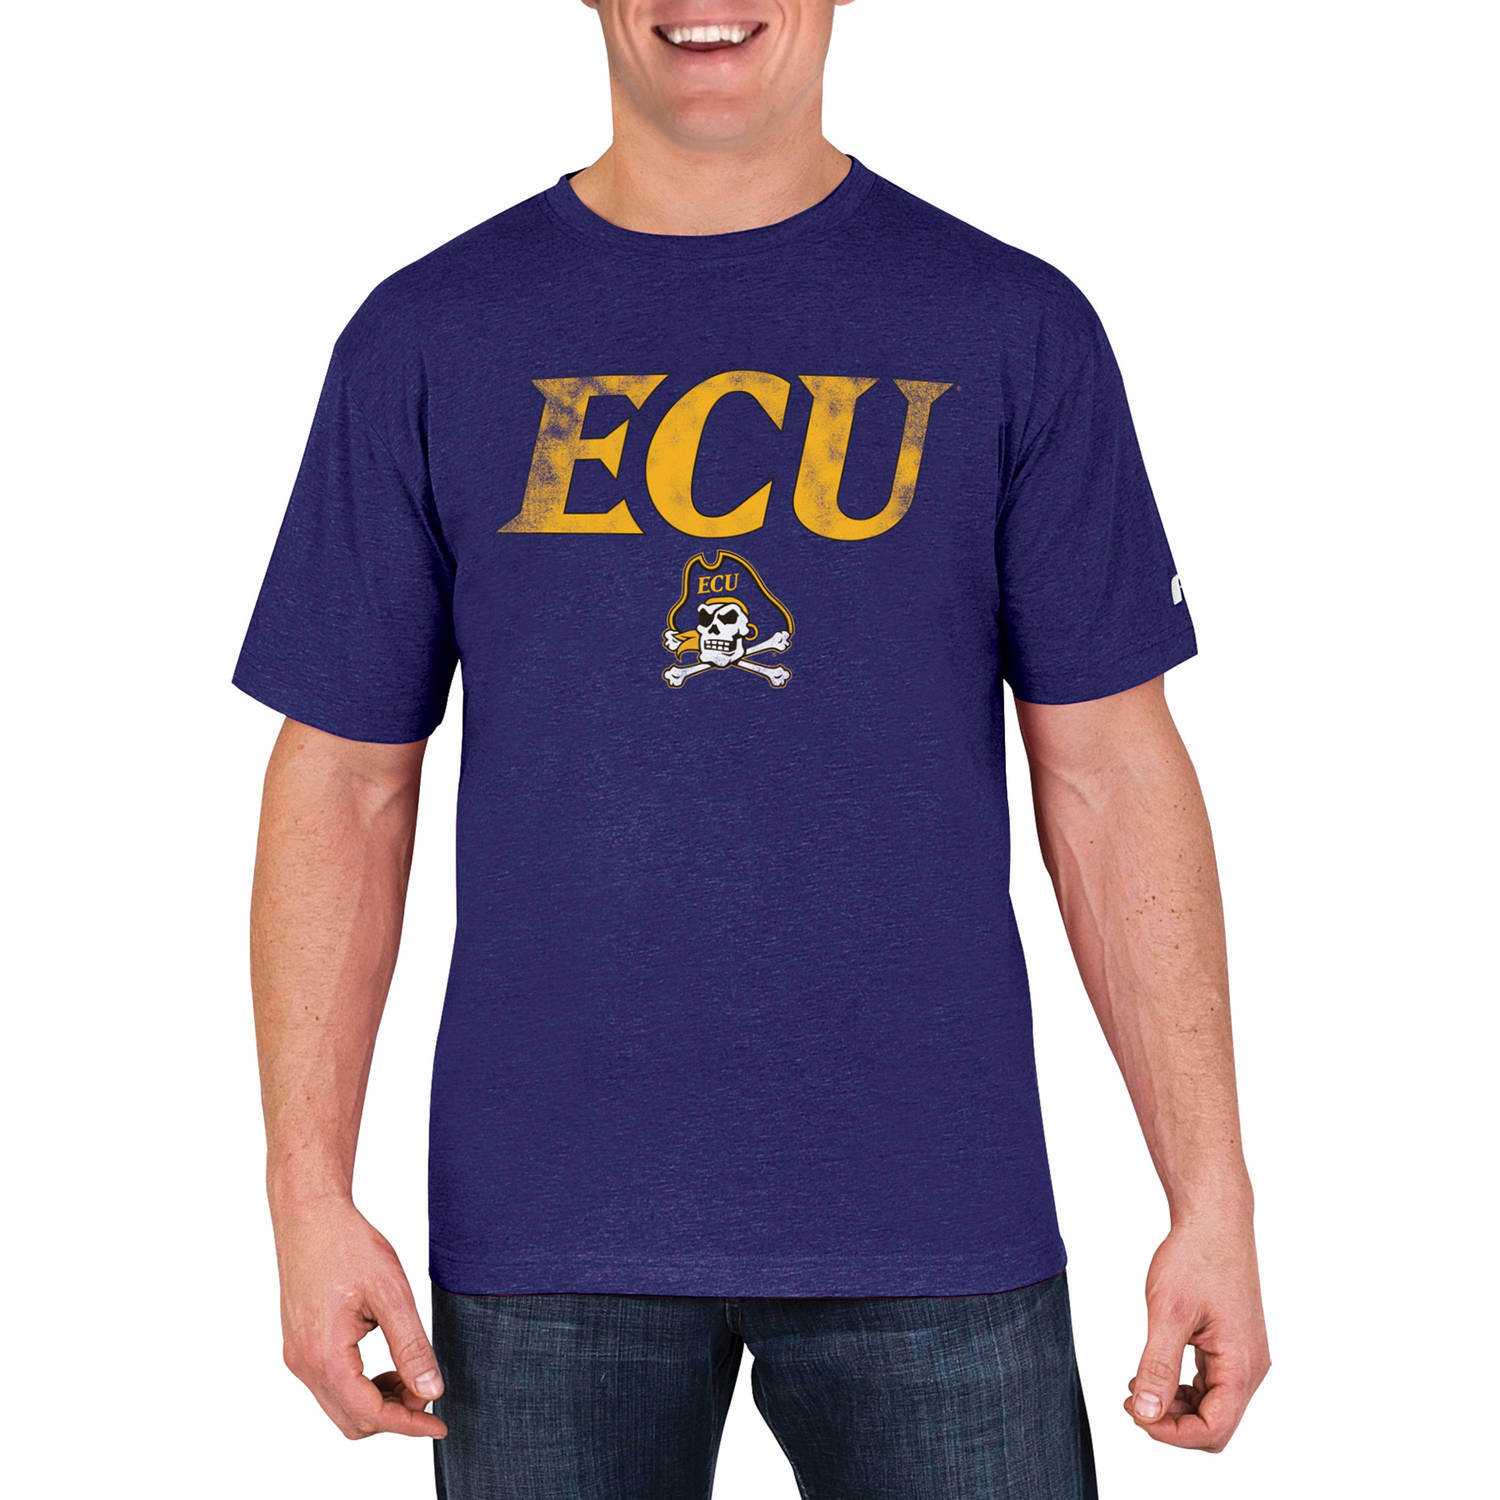 NCAA East Carolina Pirates Men's Cotton/Poly Blend T-Shirt